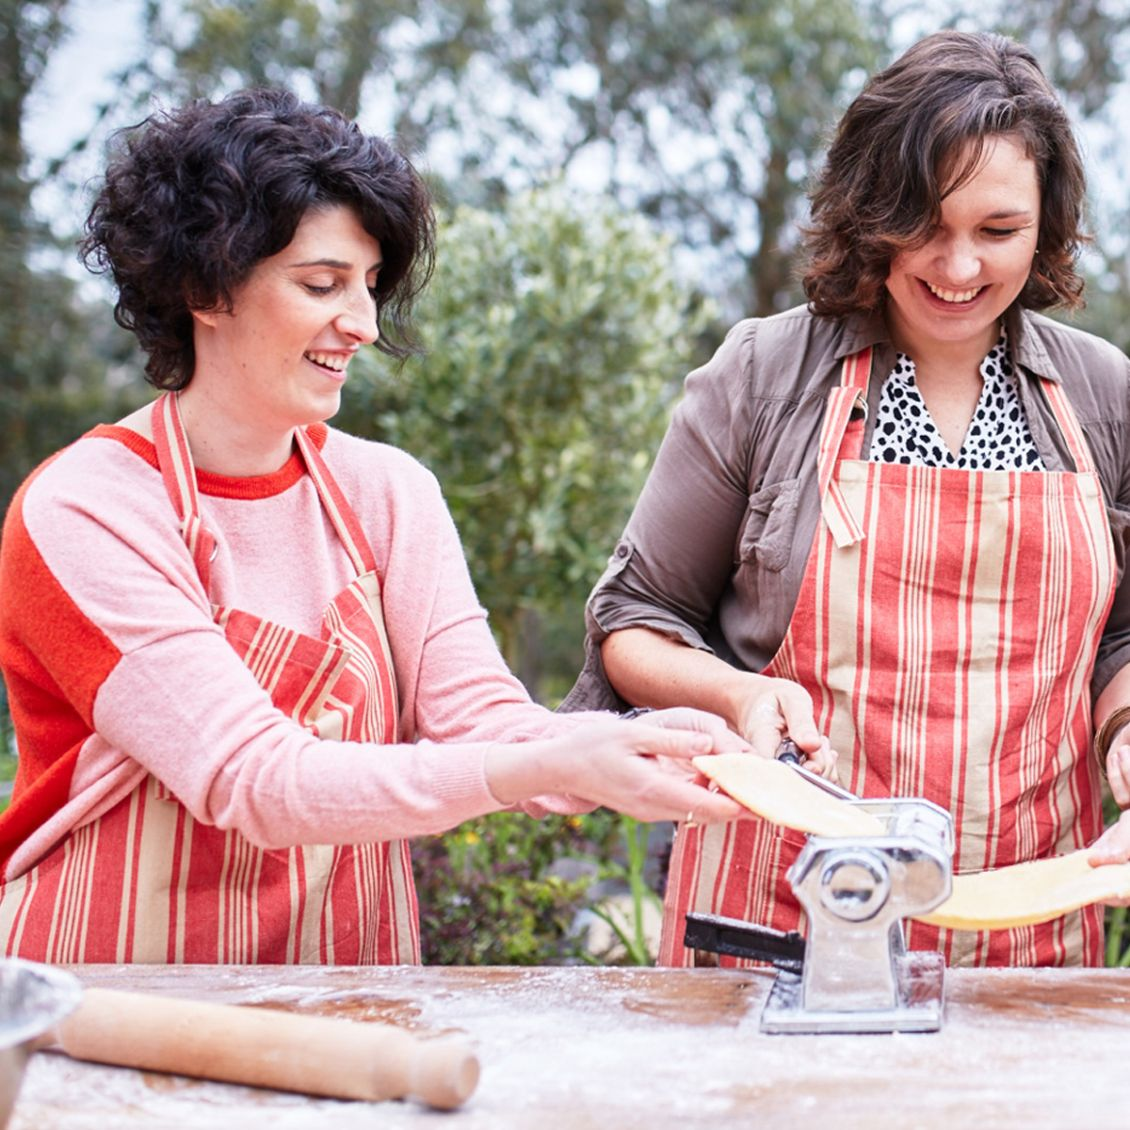 Pasta making at Green Olive Red Hill